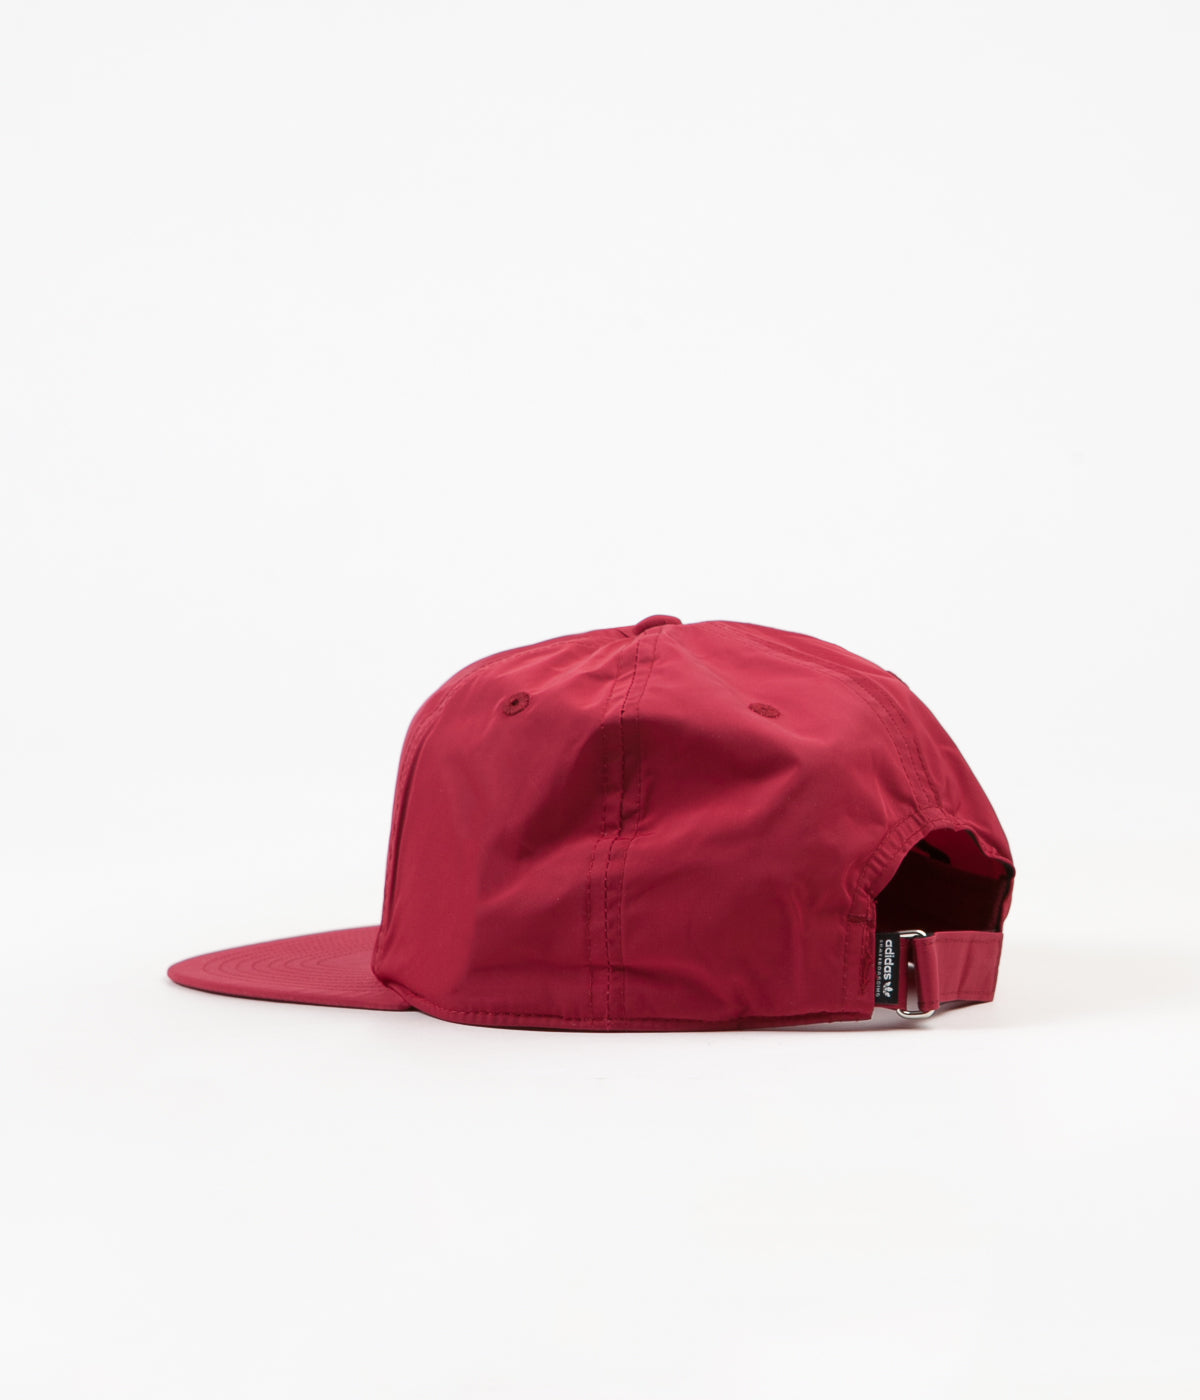 Adidas Court Crusher Cap - Collegiate Burgundy